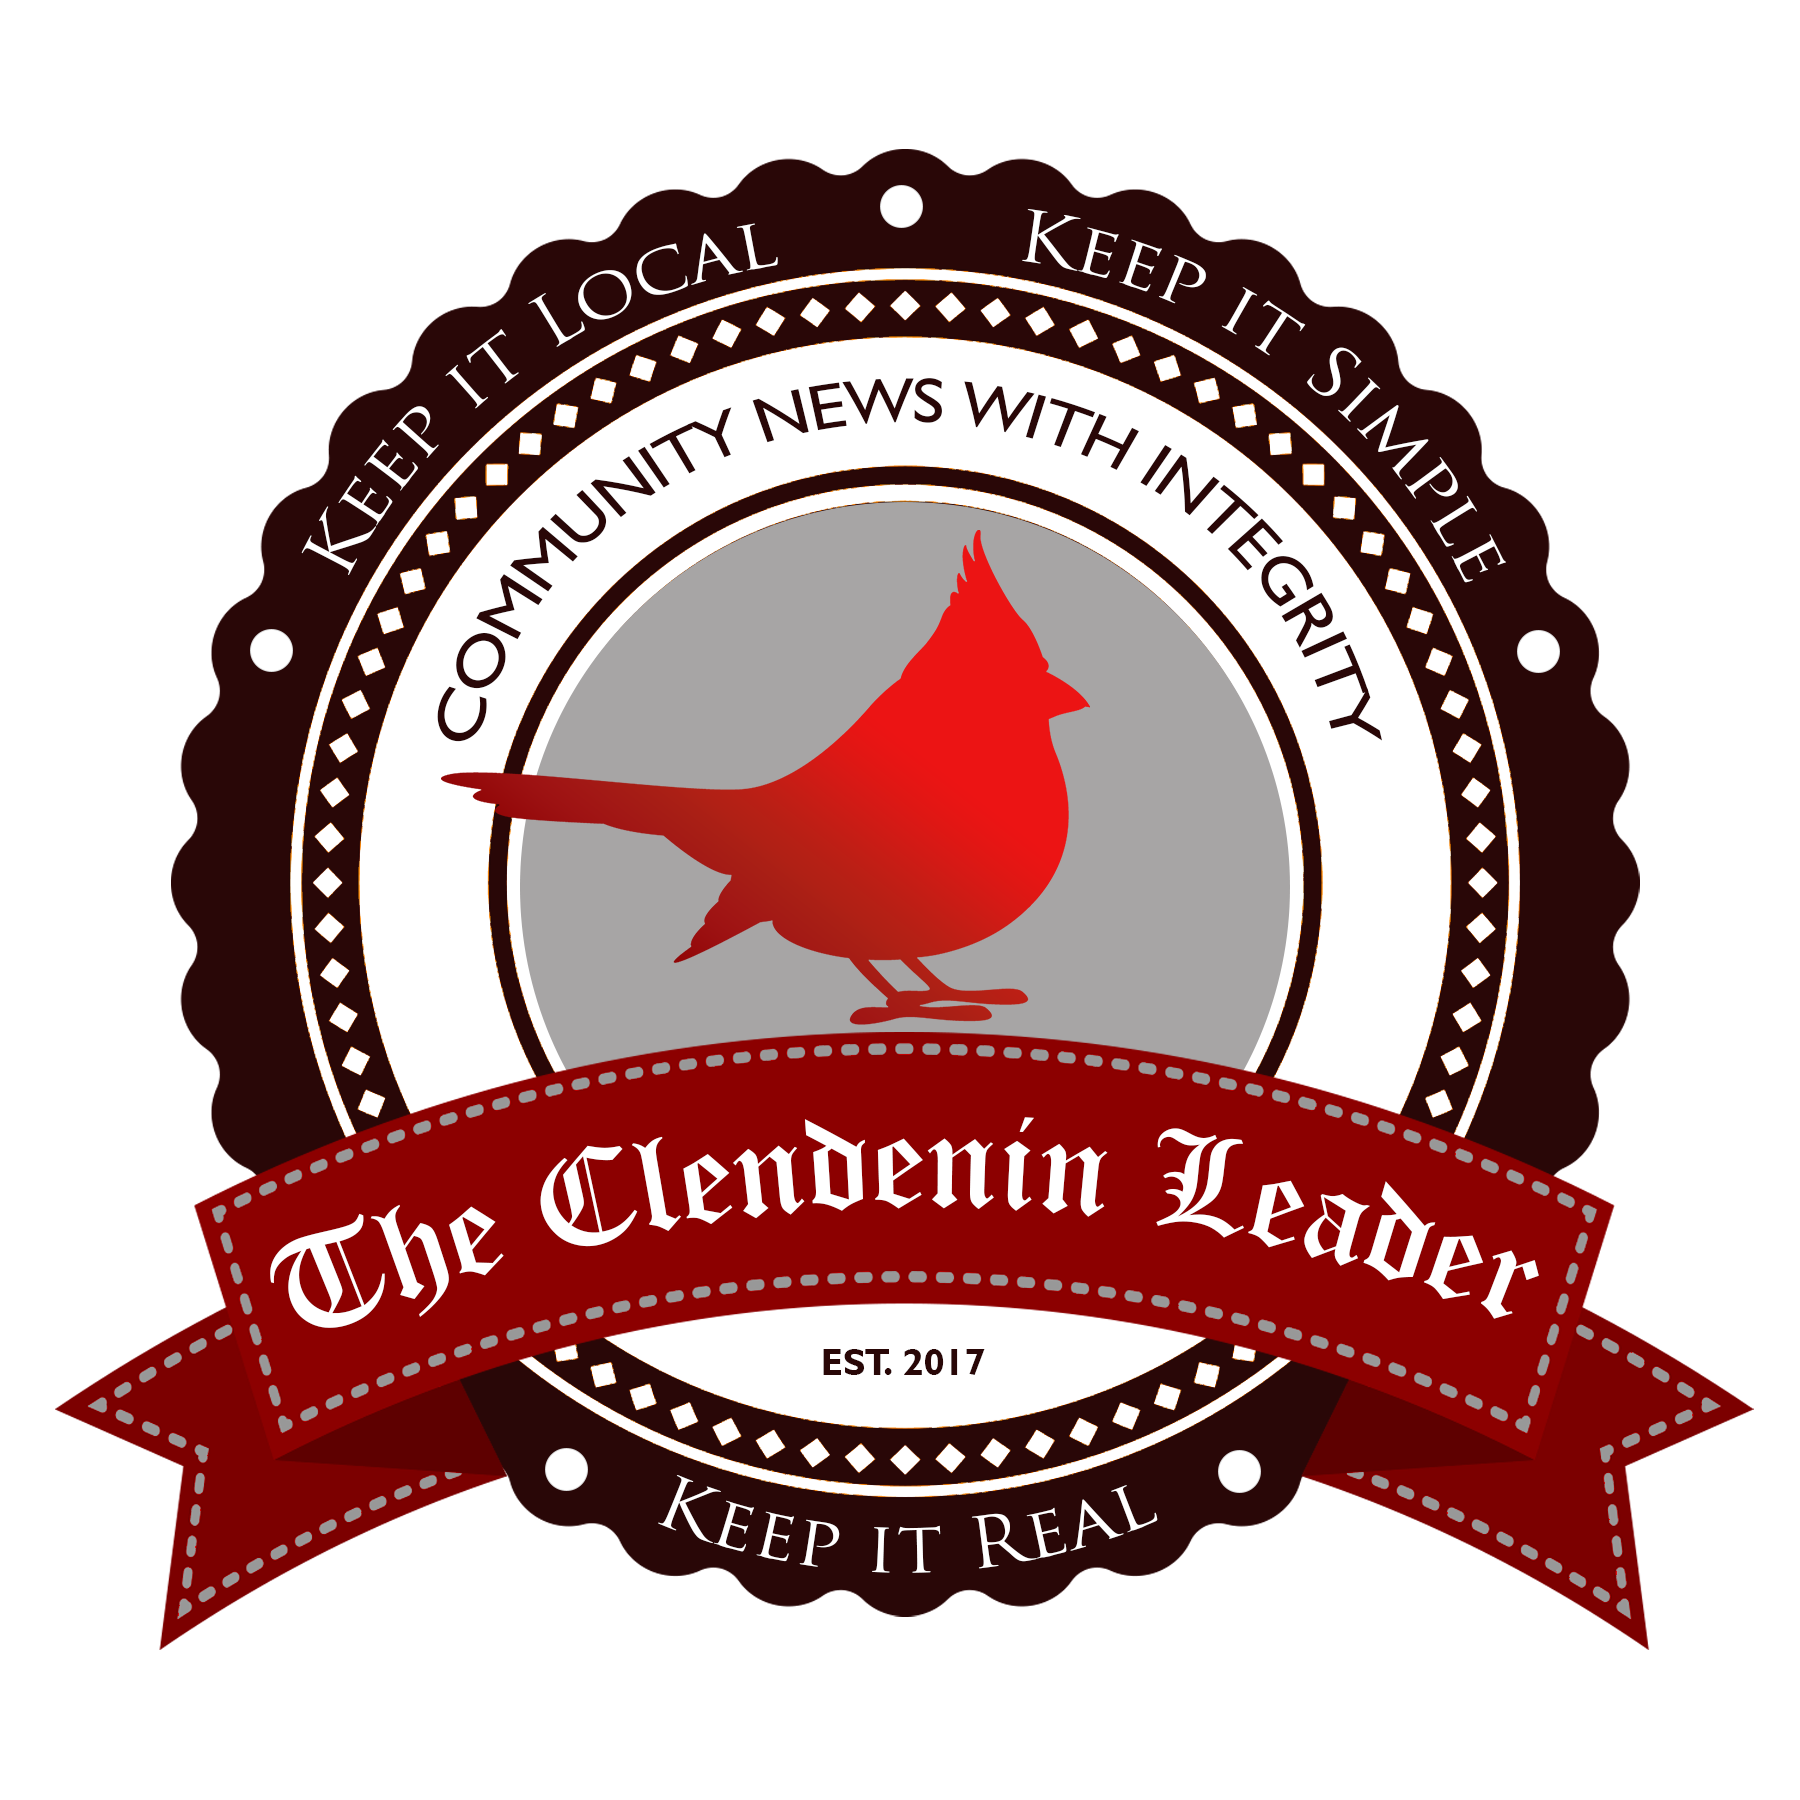 The Clendenin Leader